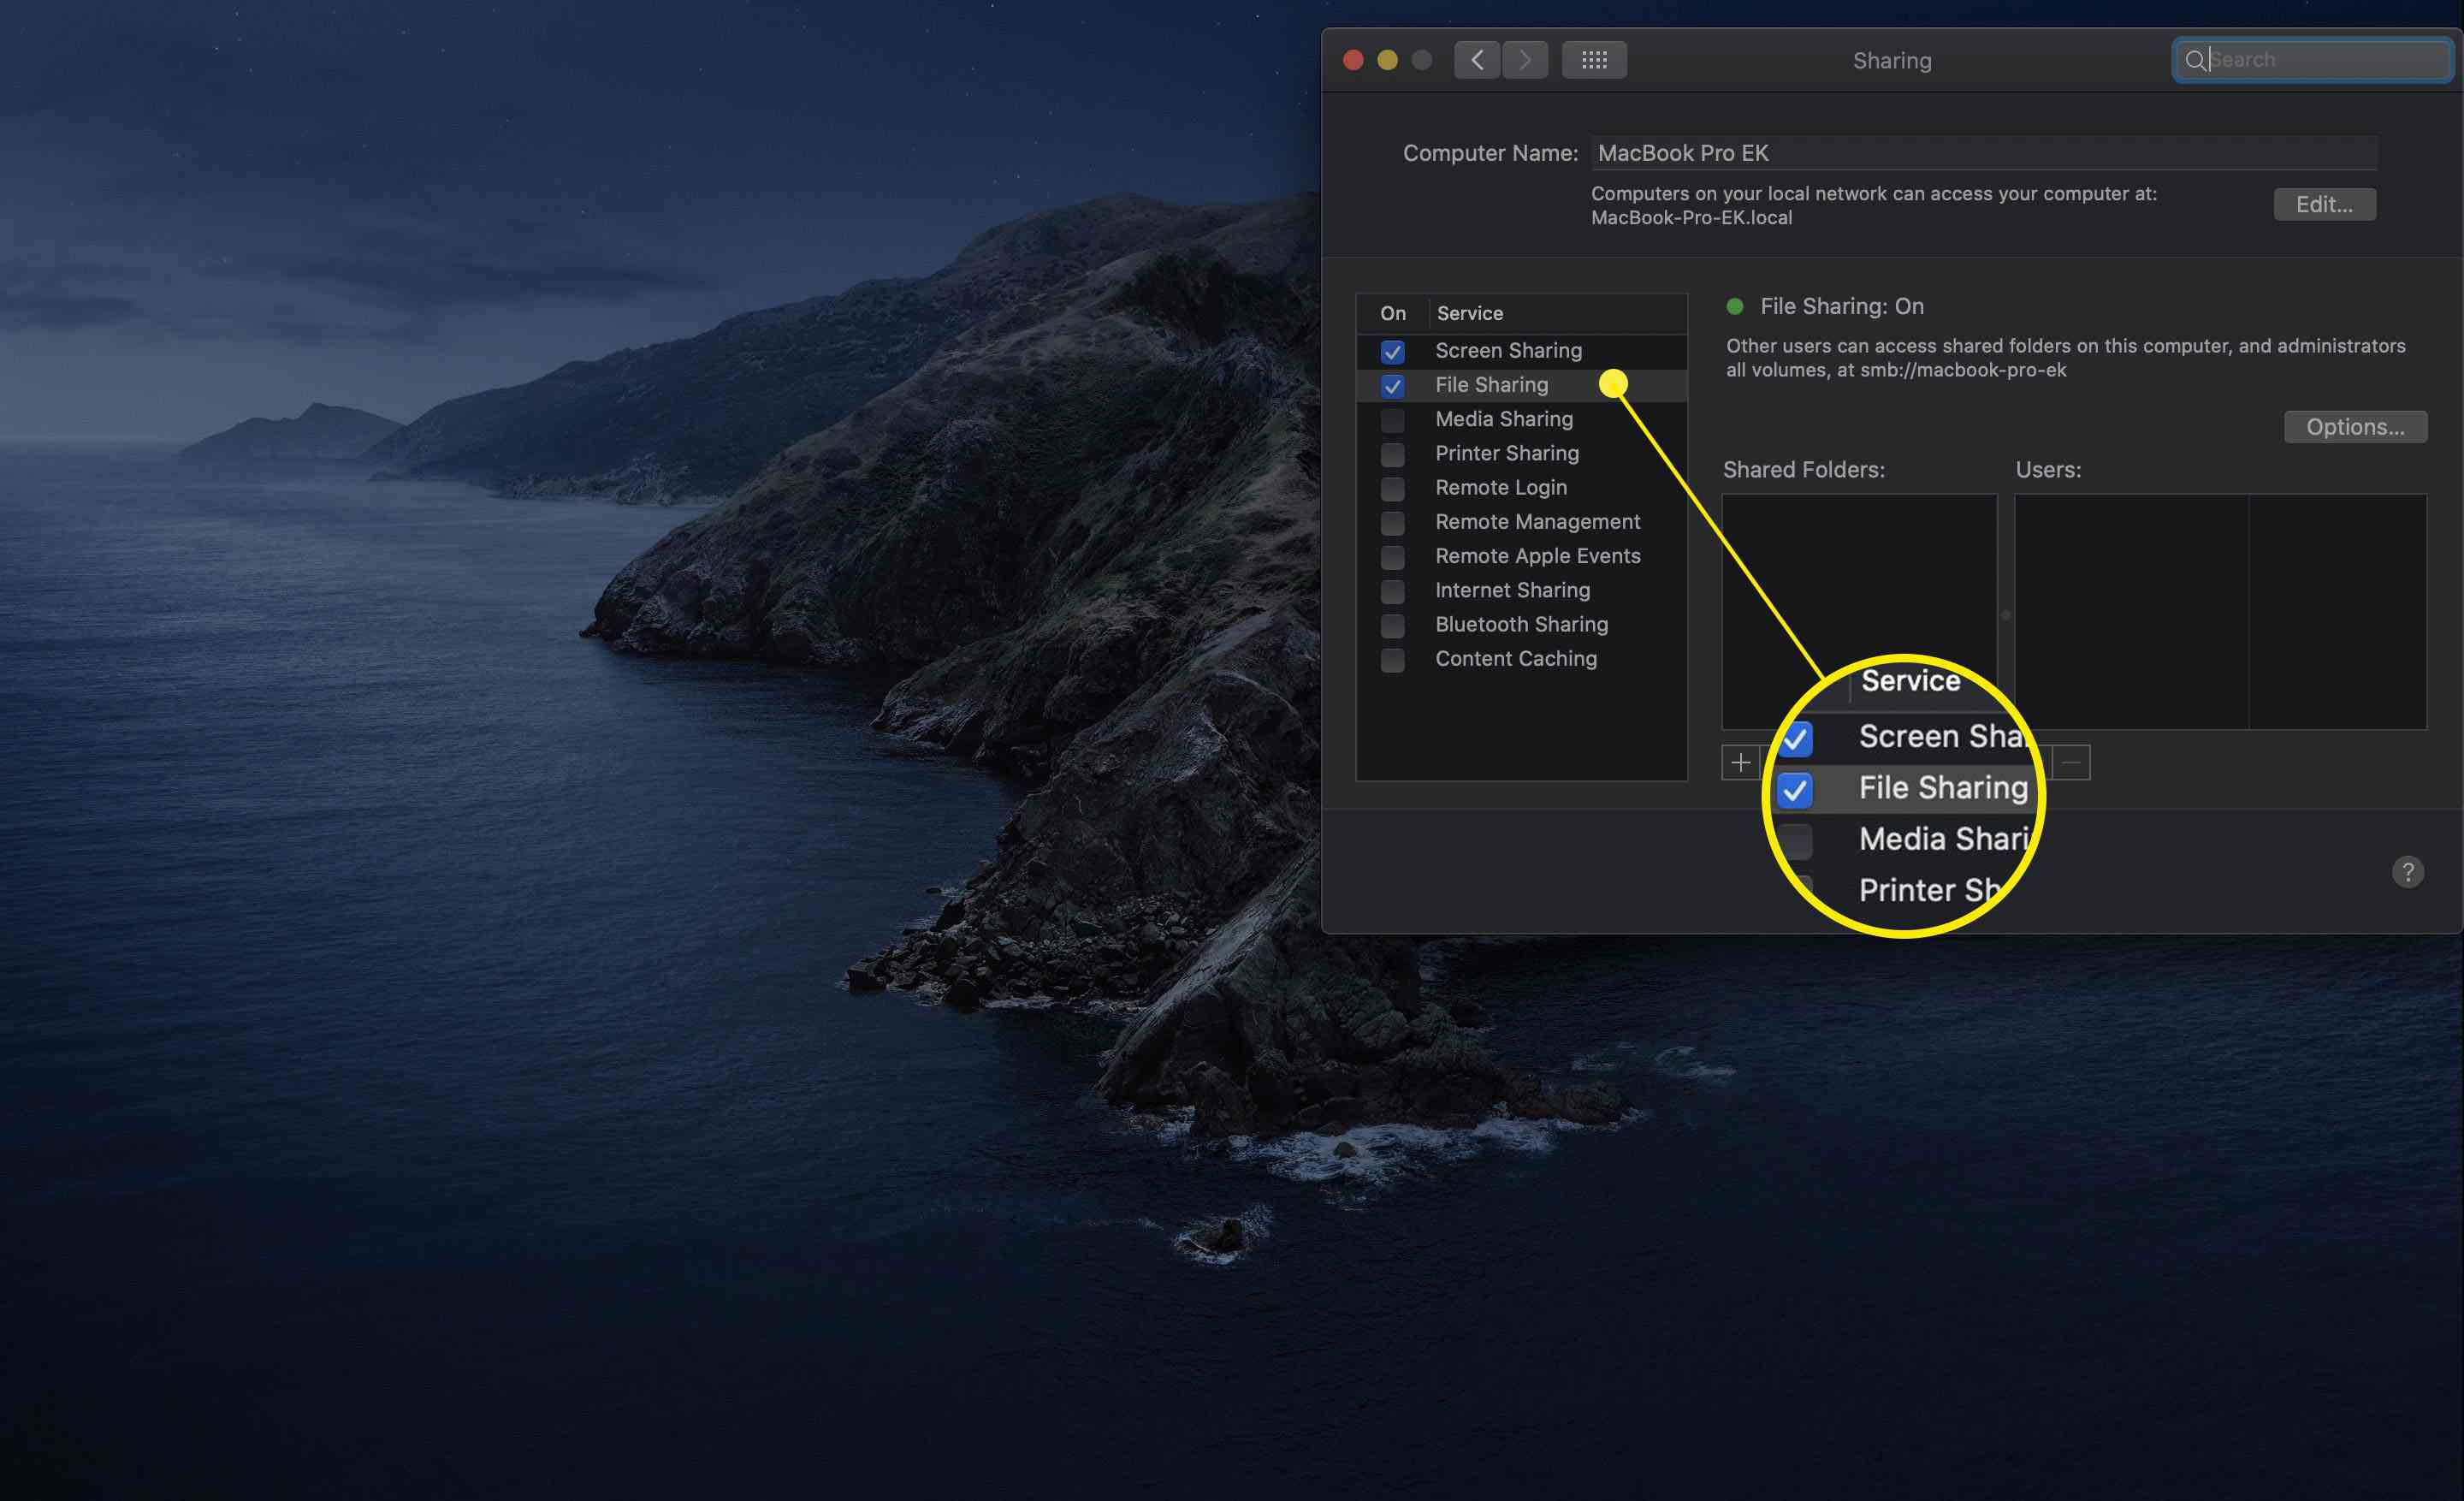 File Sharing option in macOS sharing preferences